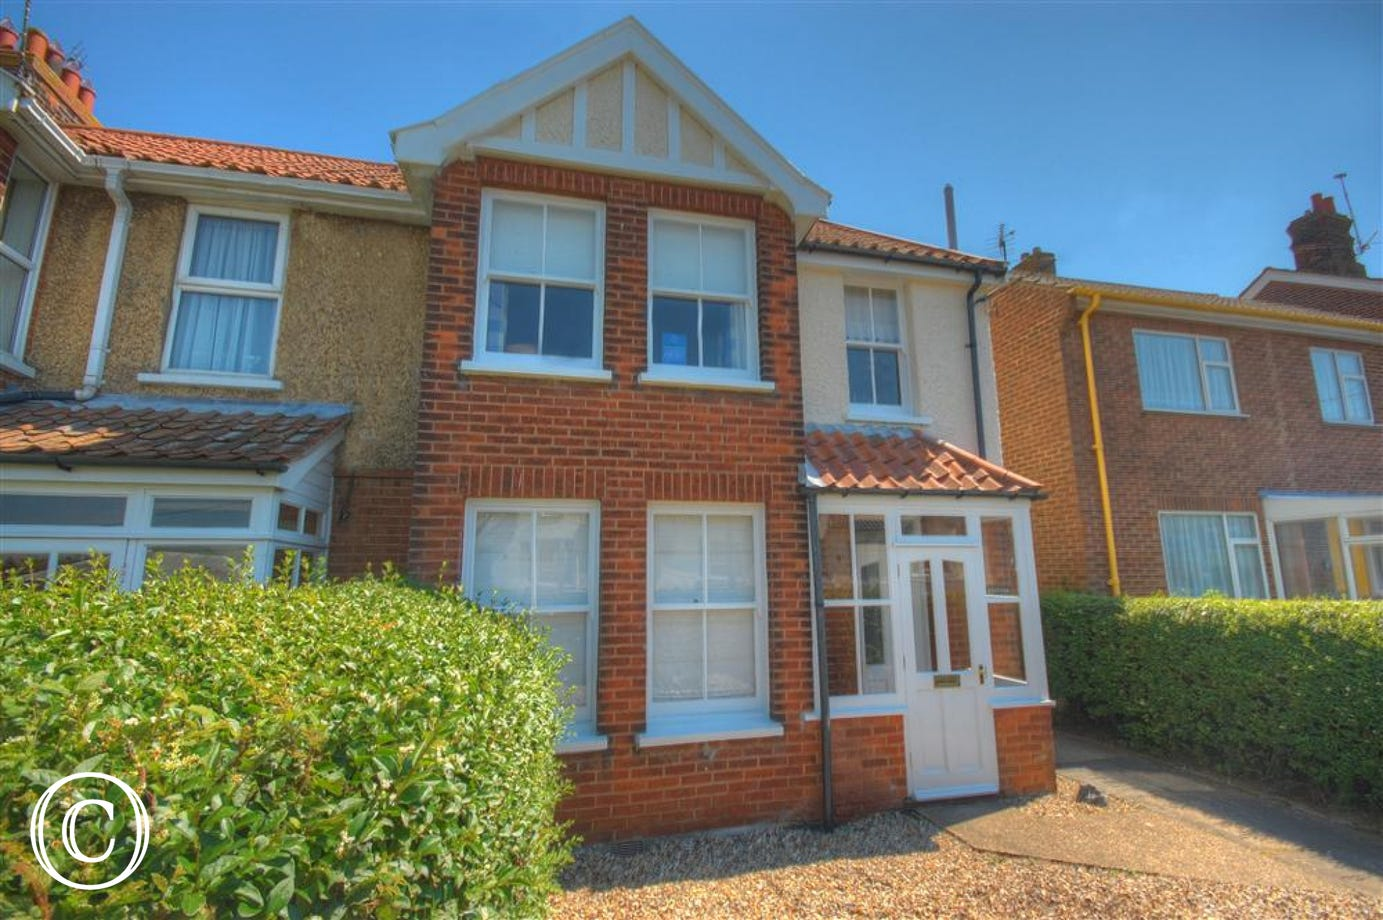 Situated both moments from the High Street and Sea front, this 4 bedroomed property is the perfect family get away.